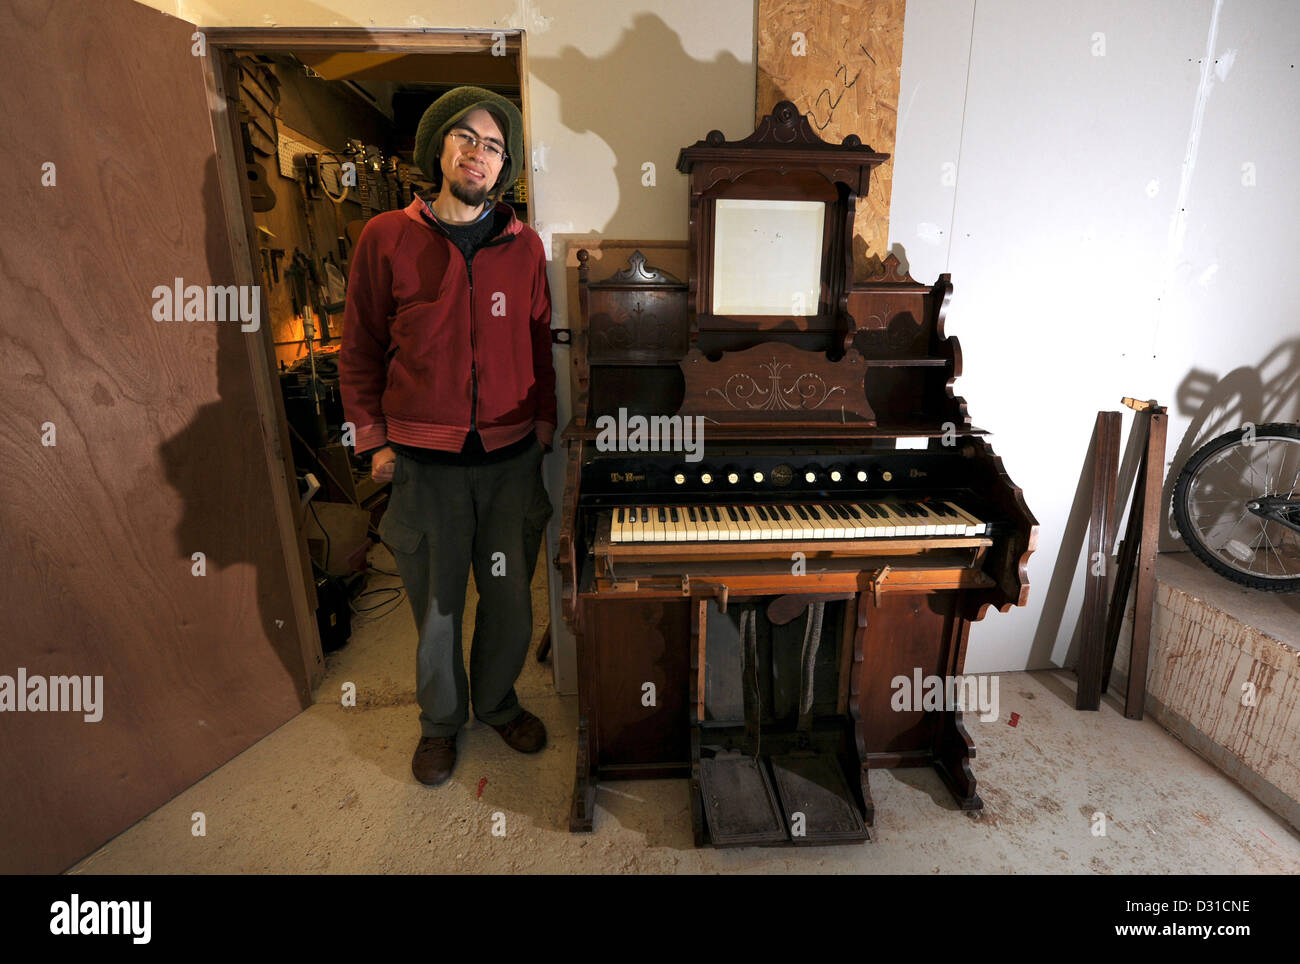 Tim Lloyd has an old Victorian pump organ which he is trying to find a new home for - Stock Image